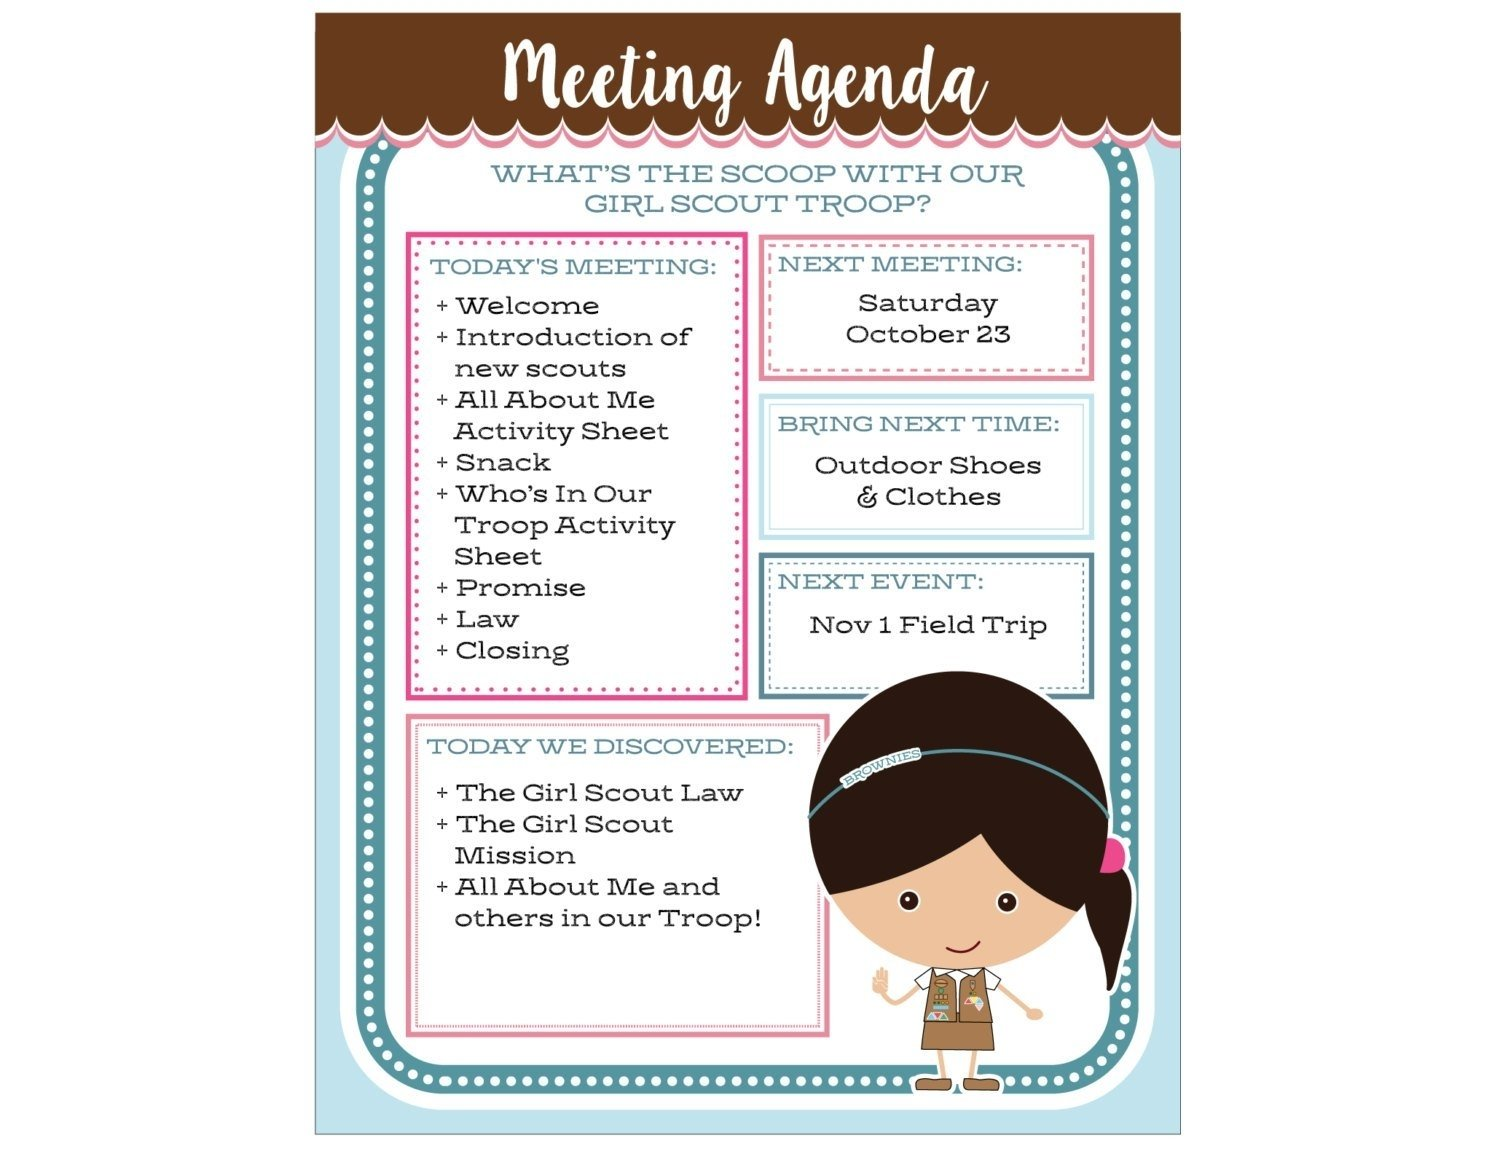 10 Awesome Brownie Girl Scout Meeting Ideas brownie girl scout meeting agenda editable printable